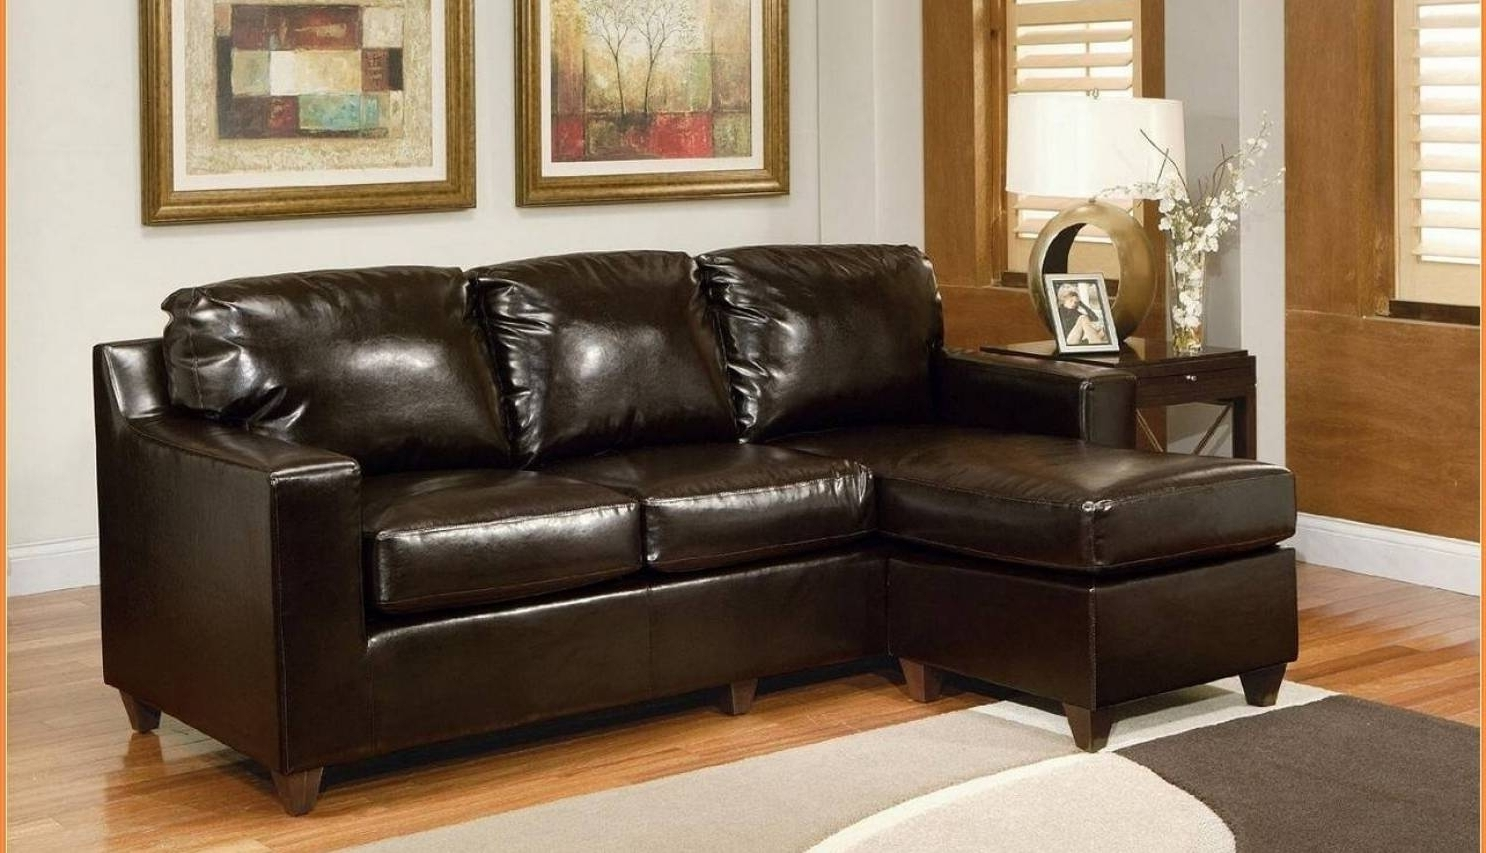 Orange County Ca Sectional Sofas For Well Known Simple Sectional Sofas Orange County Ca For Sofa Sofas Orange (View 2 of 15)